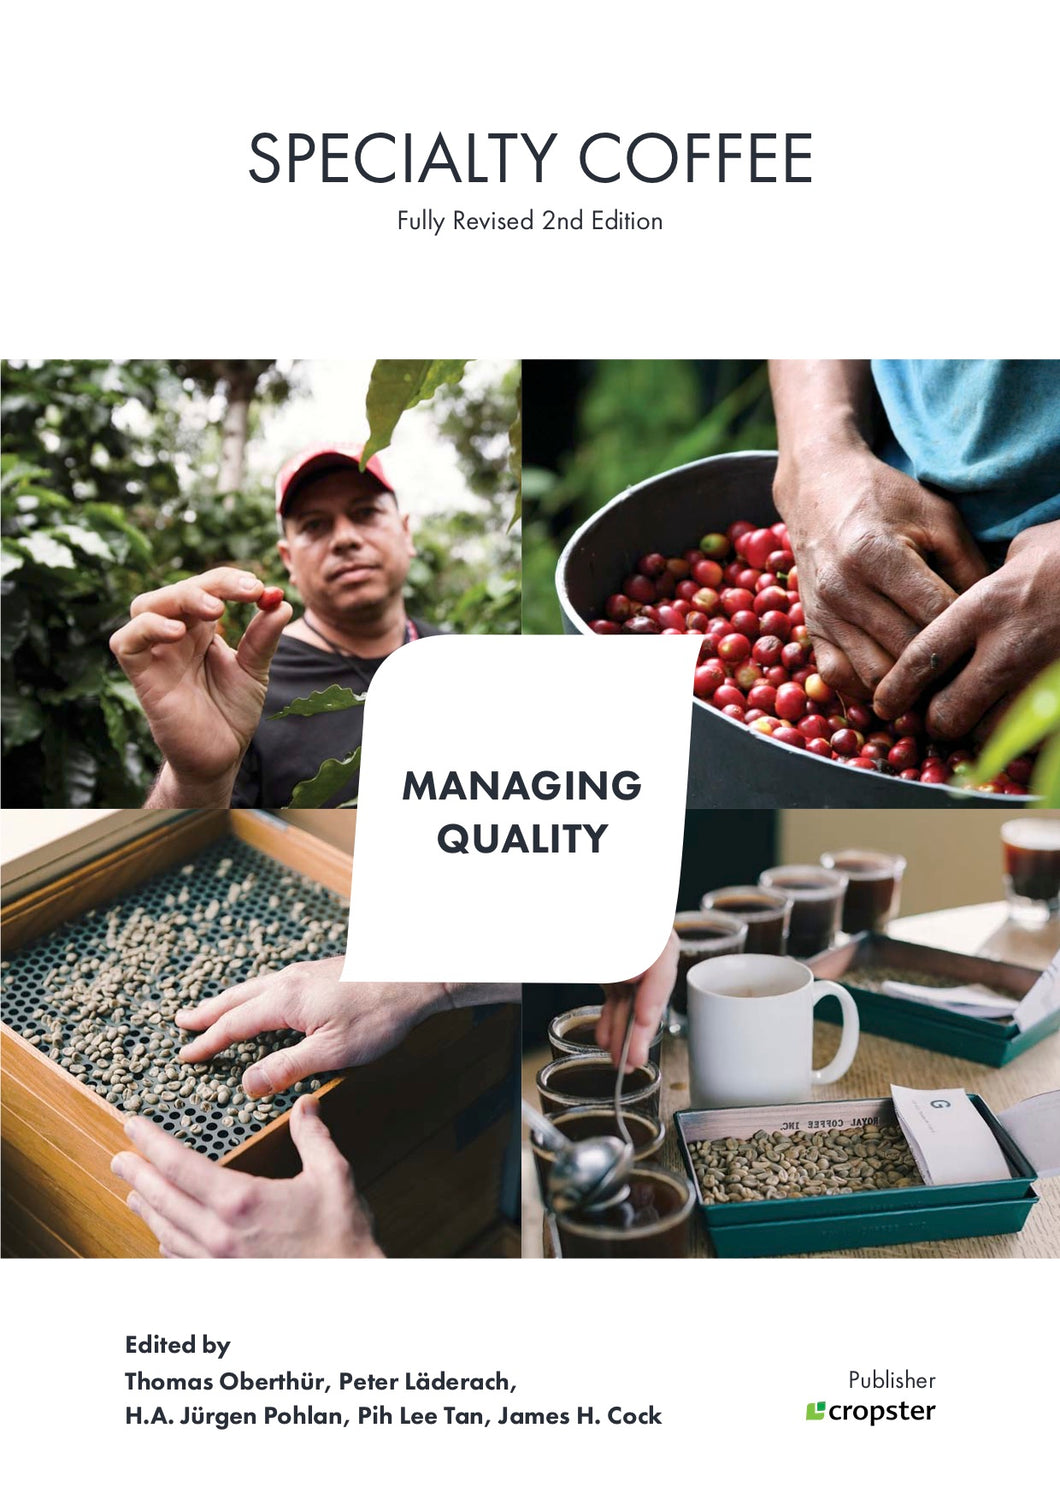 Specialty Coffee Managing Quality, fully revised 2nd edition